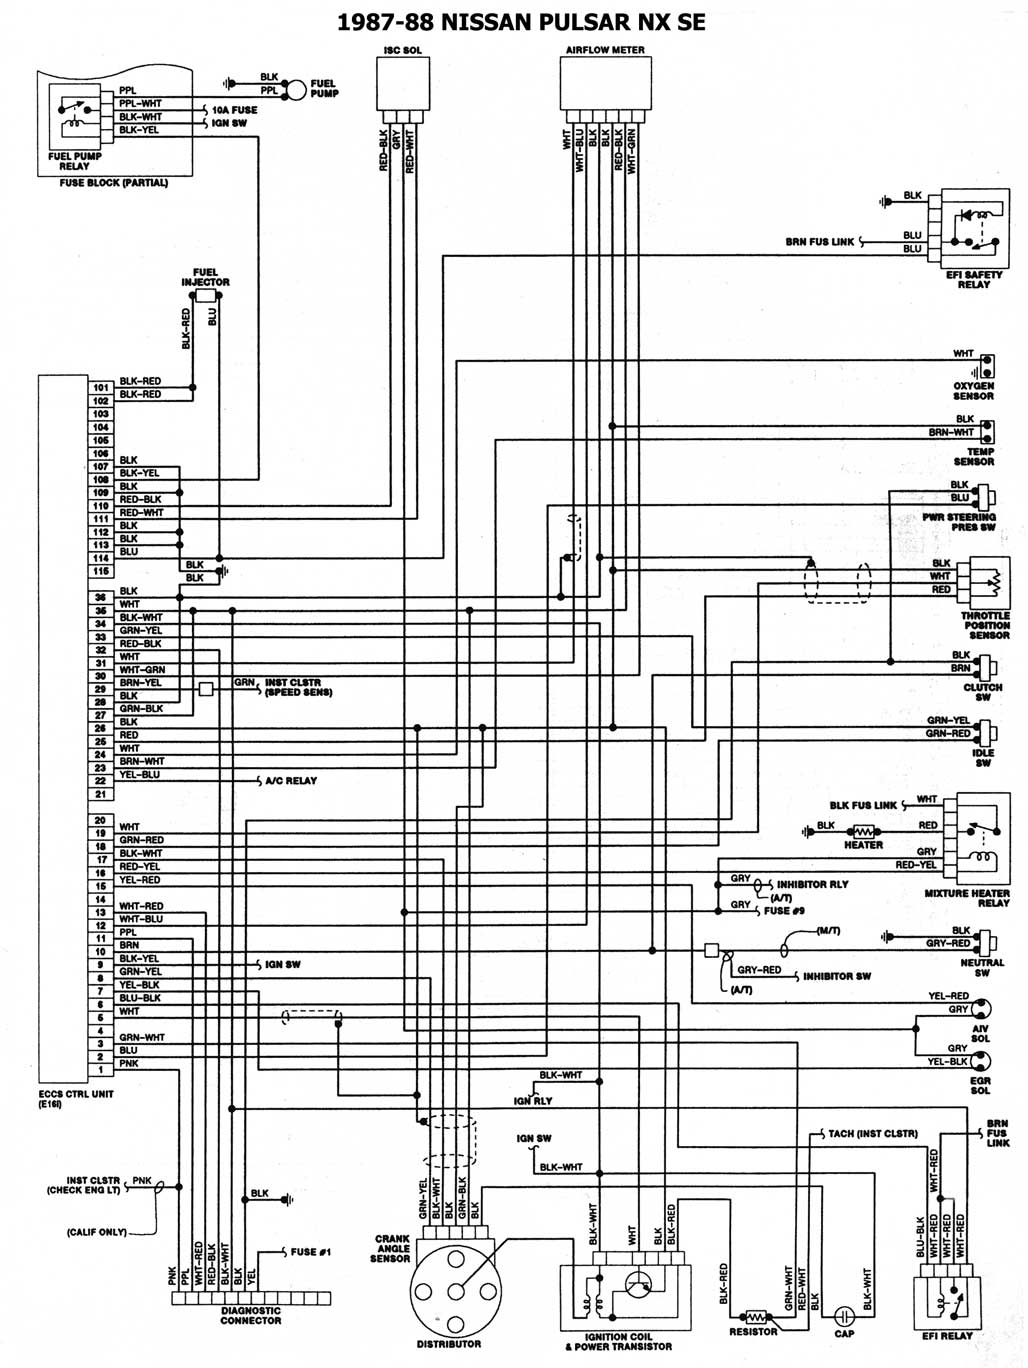 Cm Nissan Y10 Wiring Diagram Wiring Diagram